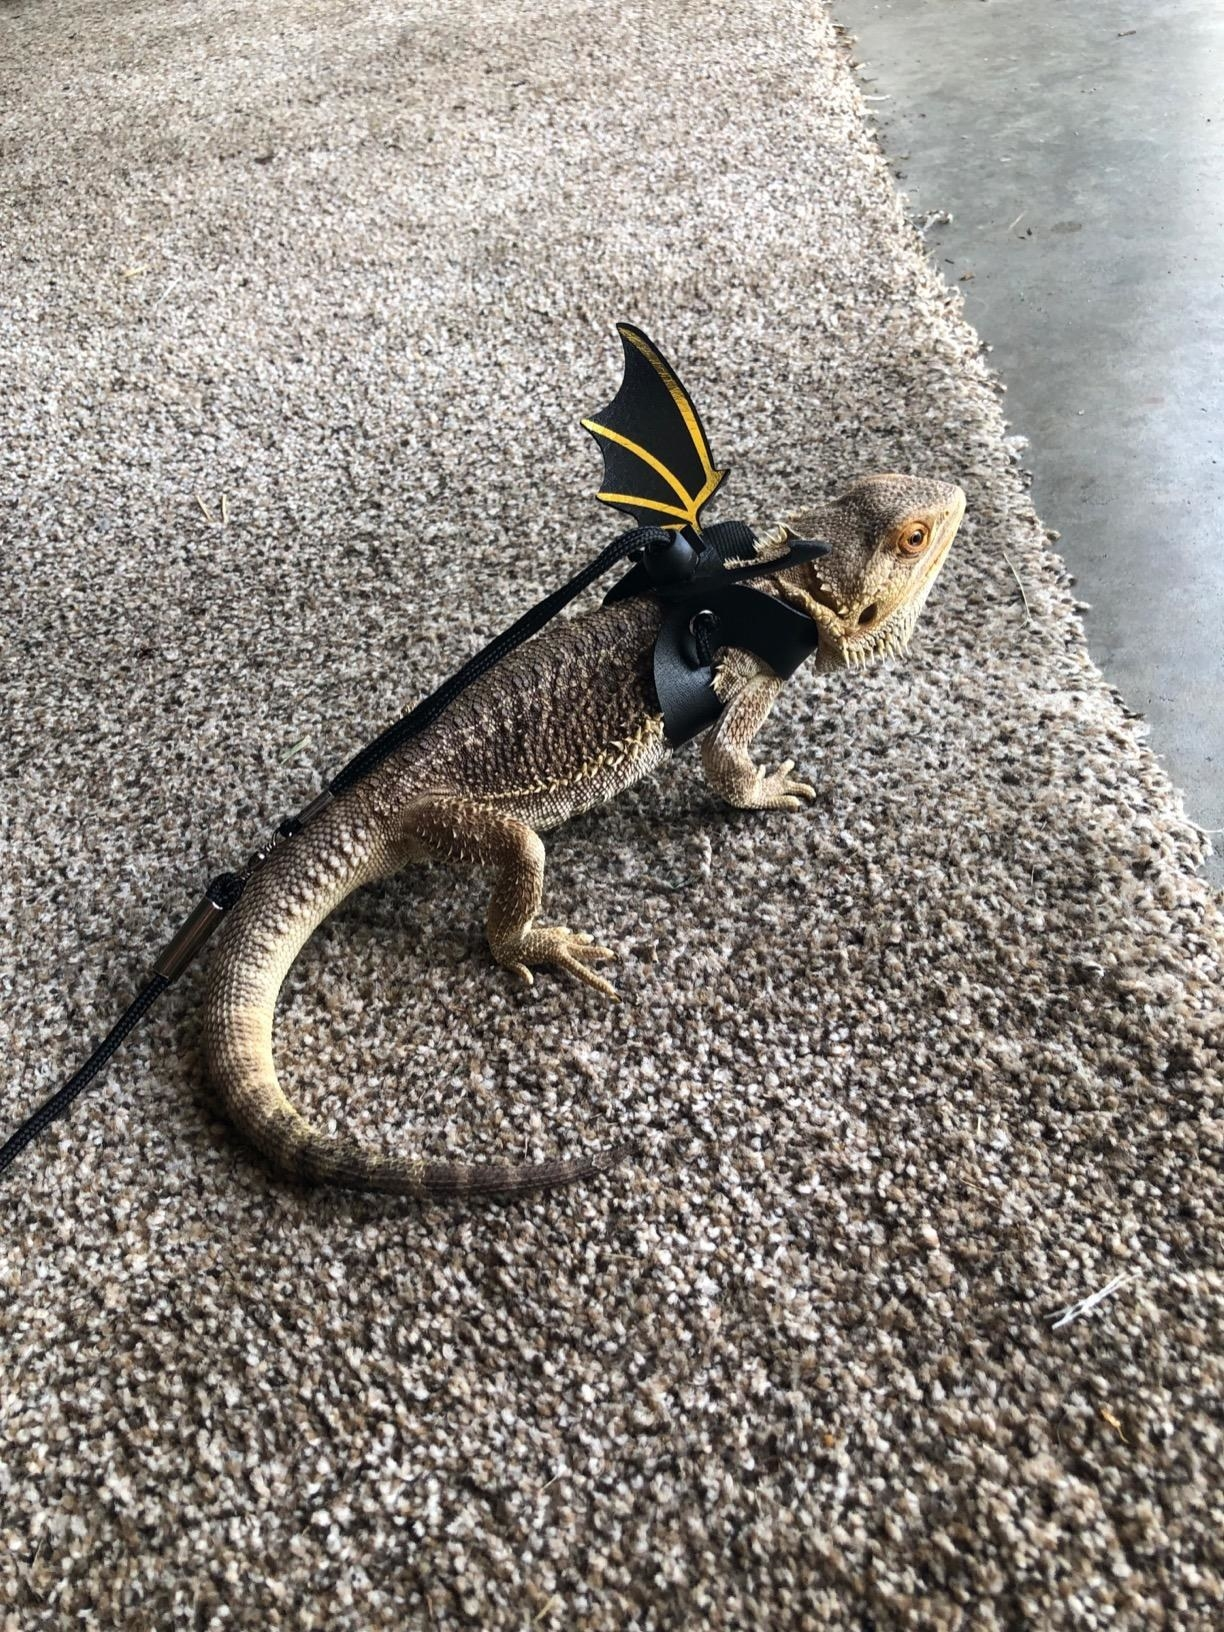 Small lizard wearing the black bat wings, which have gold details on them